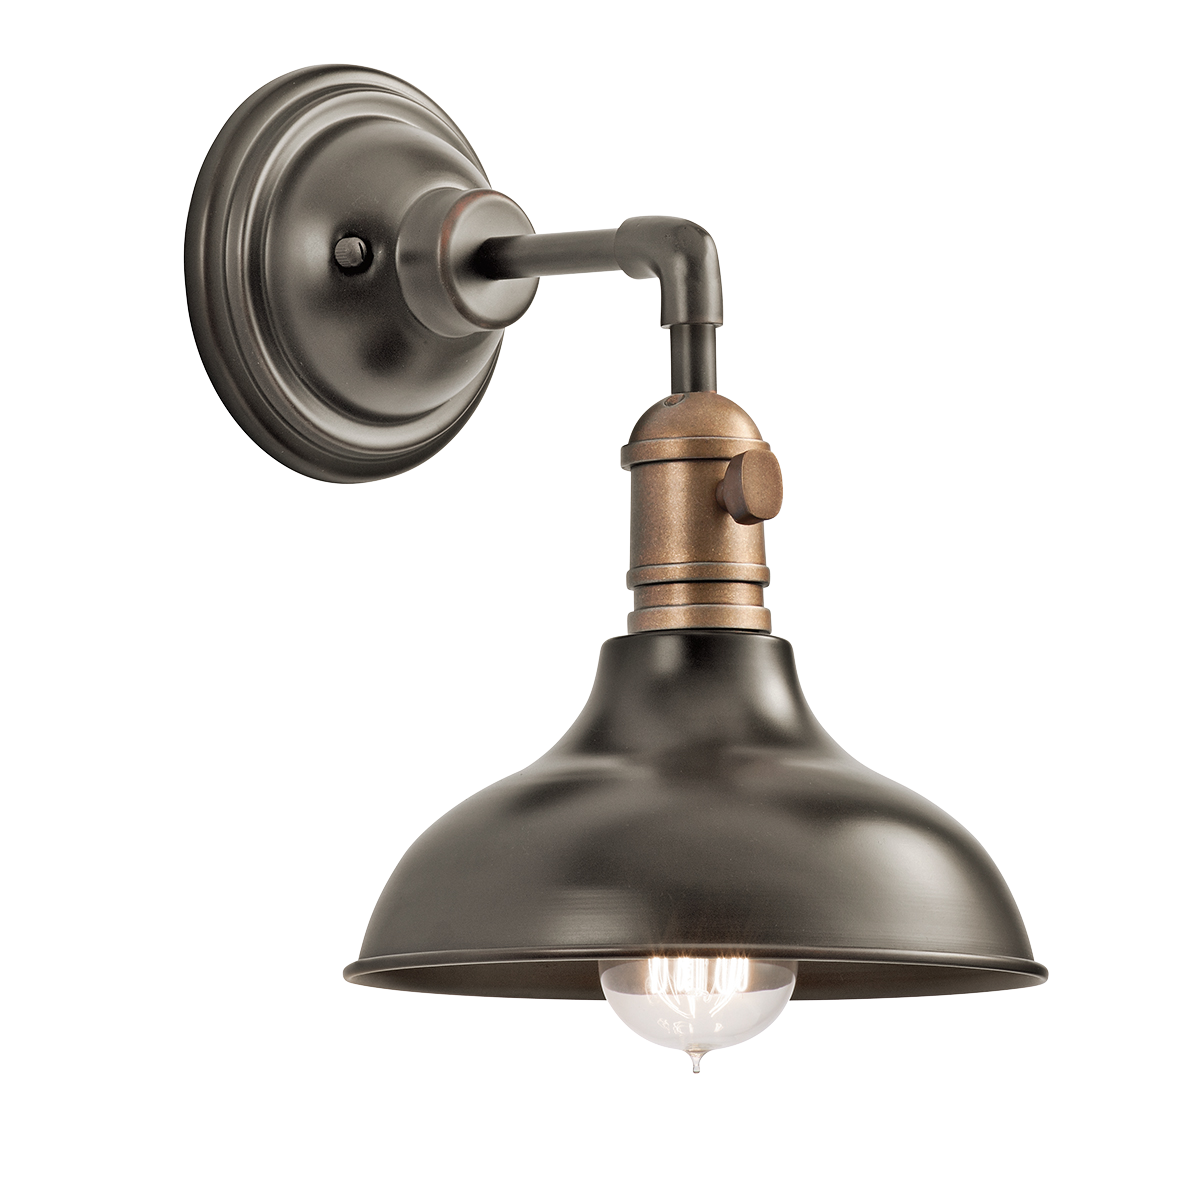 Kichler Cobson Wall Sconce - Bronze | Wall sconce lighting ... on Kichler Olde Bronze Wall Sconce id=43513